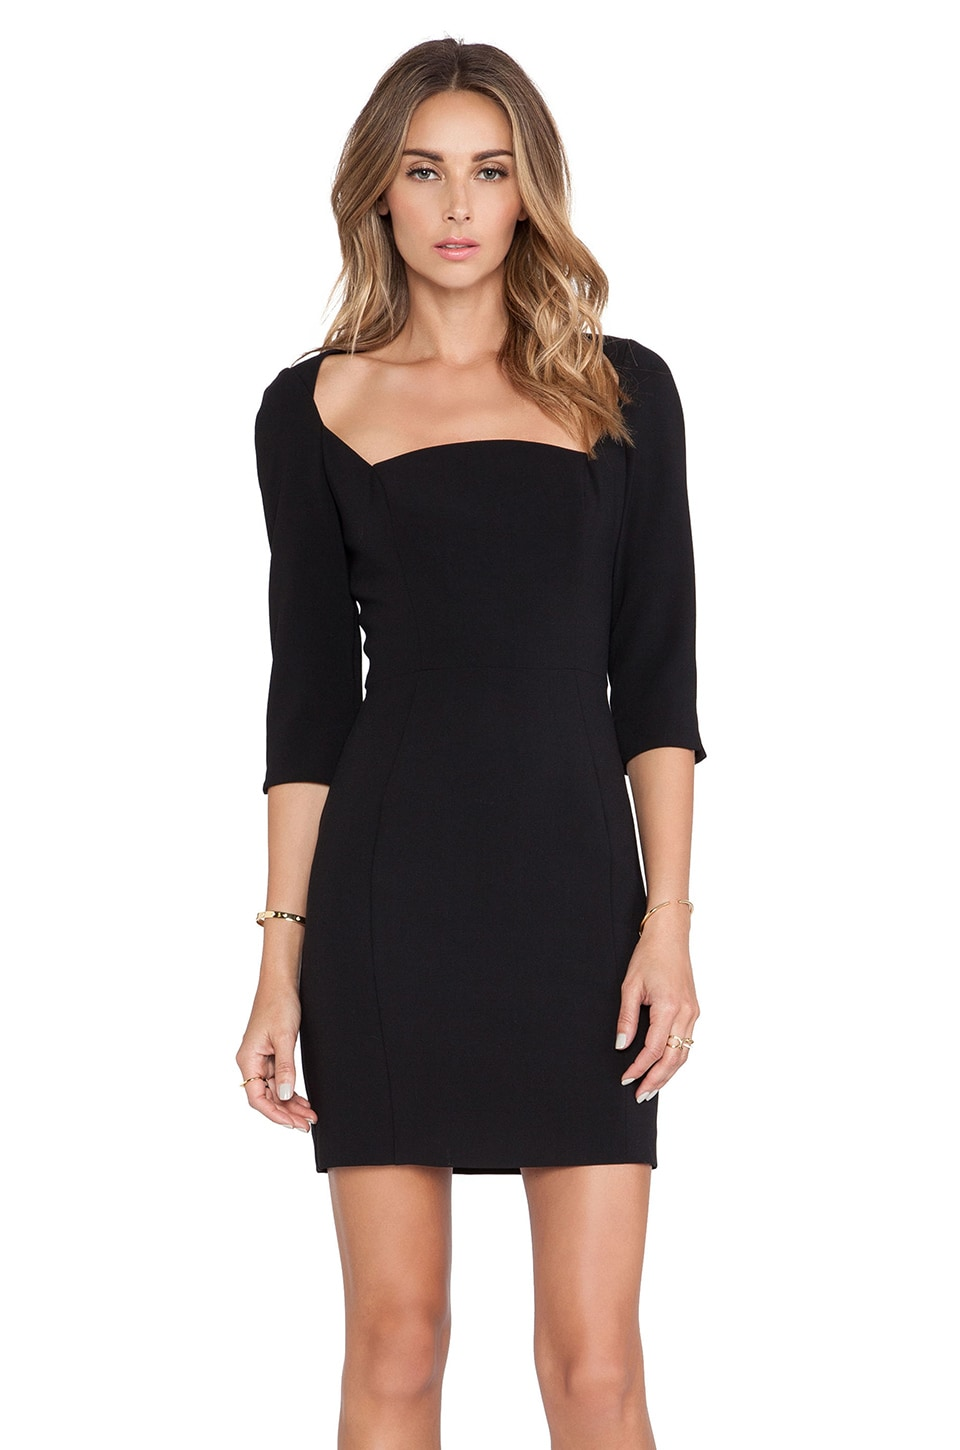 Black Halo x REVOLVE Emeline Sheath Mini Dress in Black